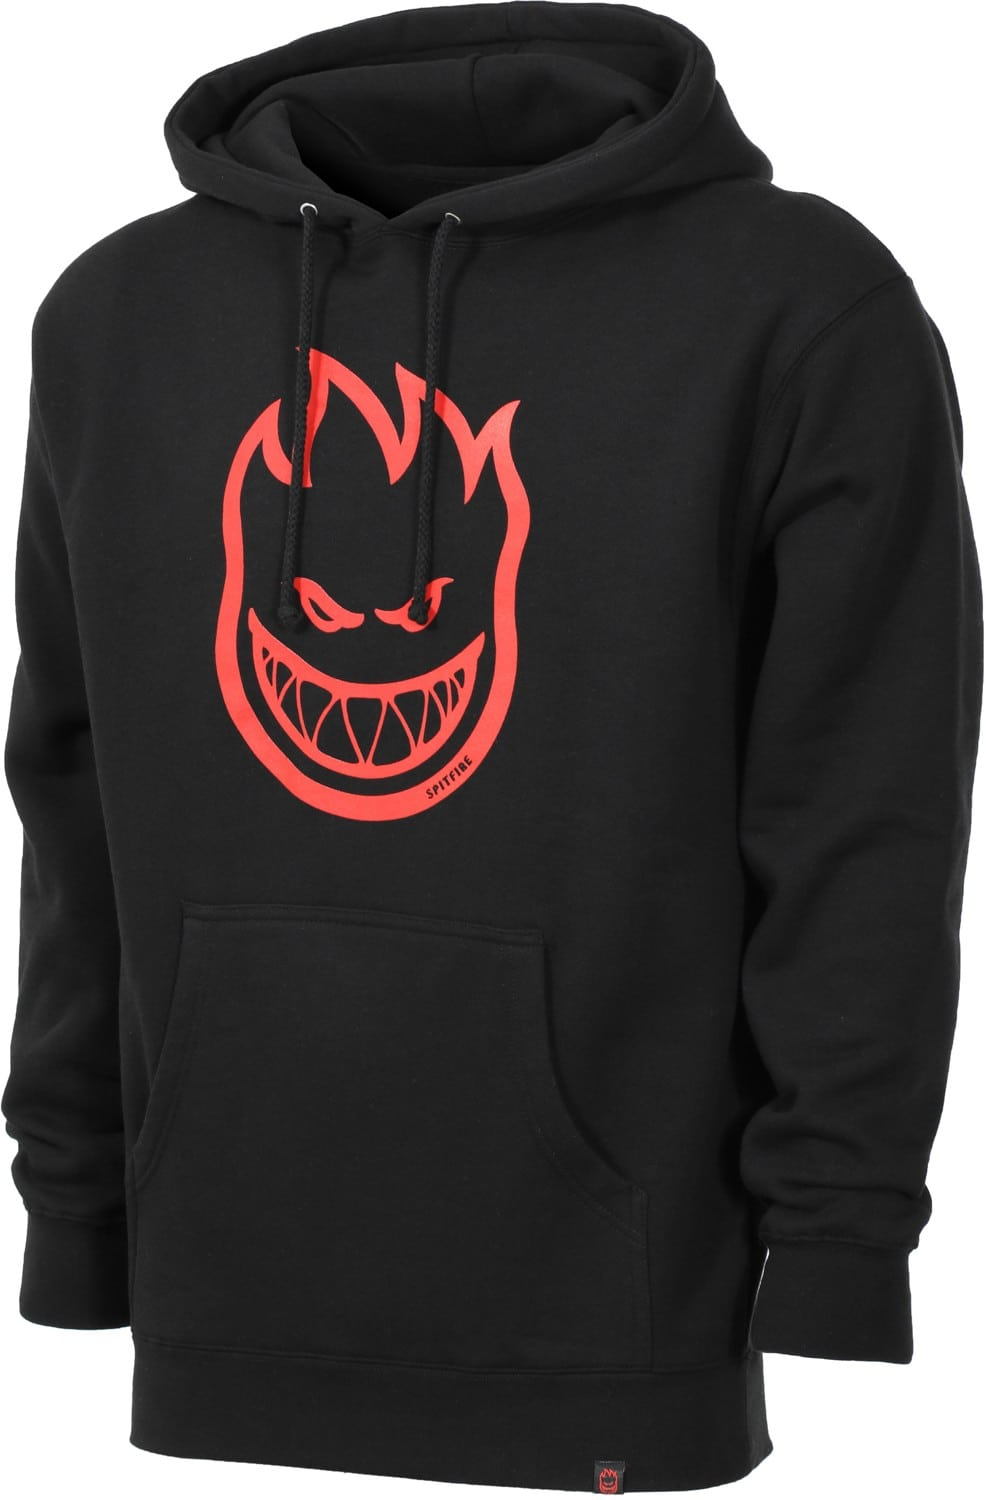 Hoodies on sale free shipping